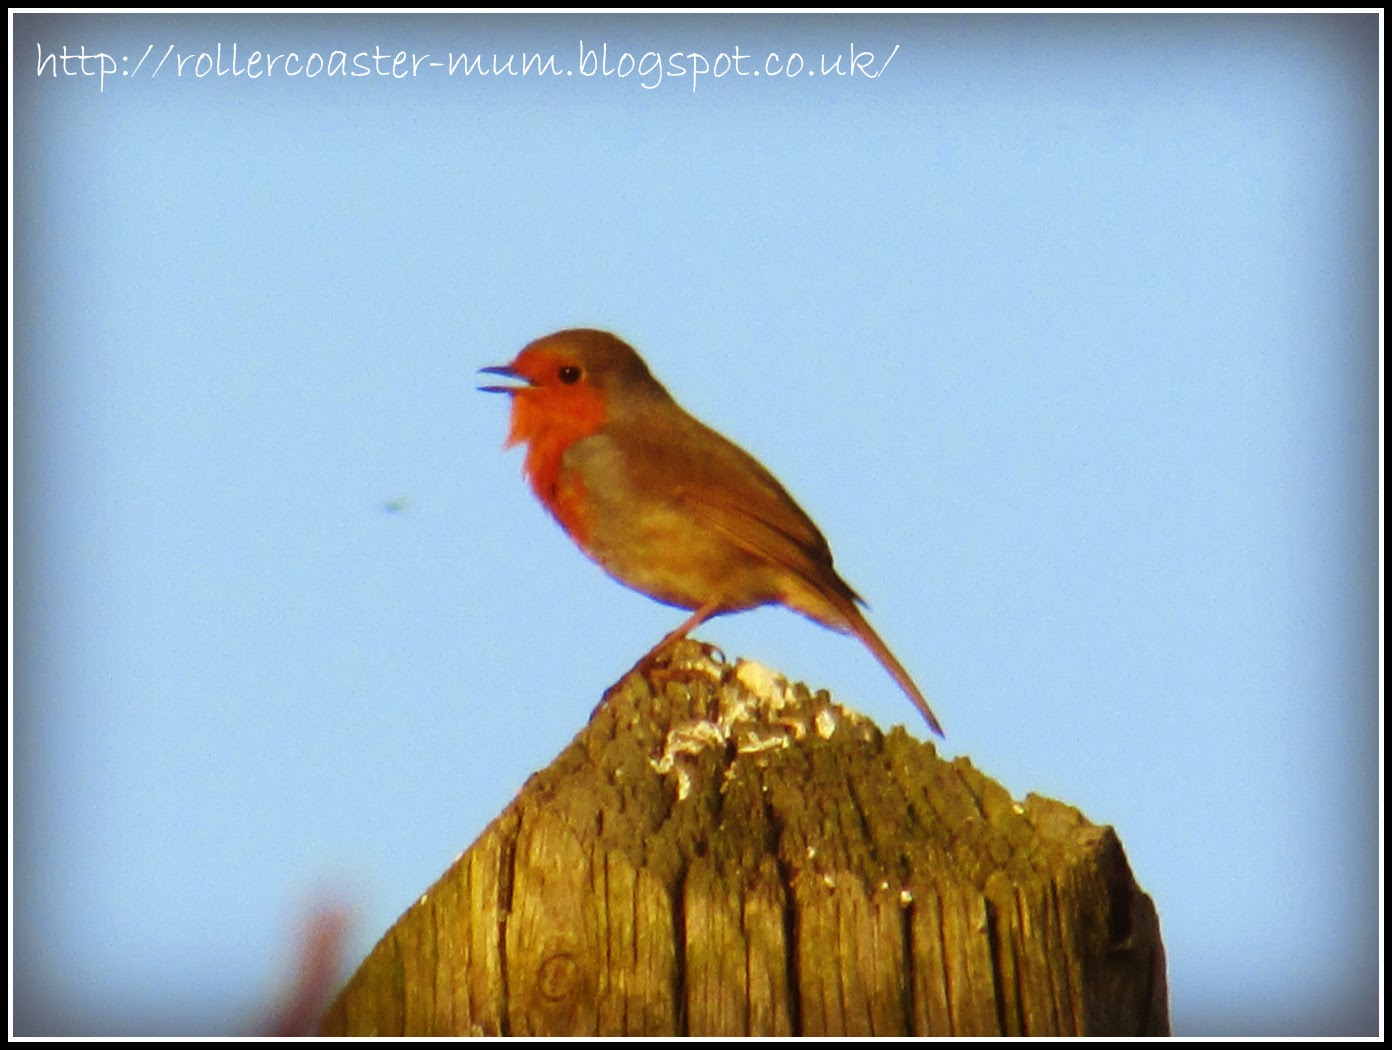 Robin's evening song